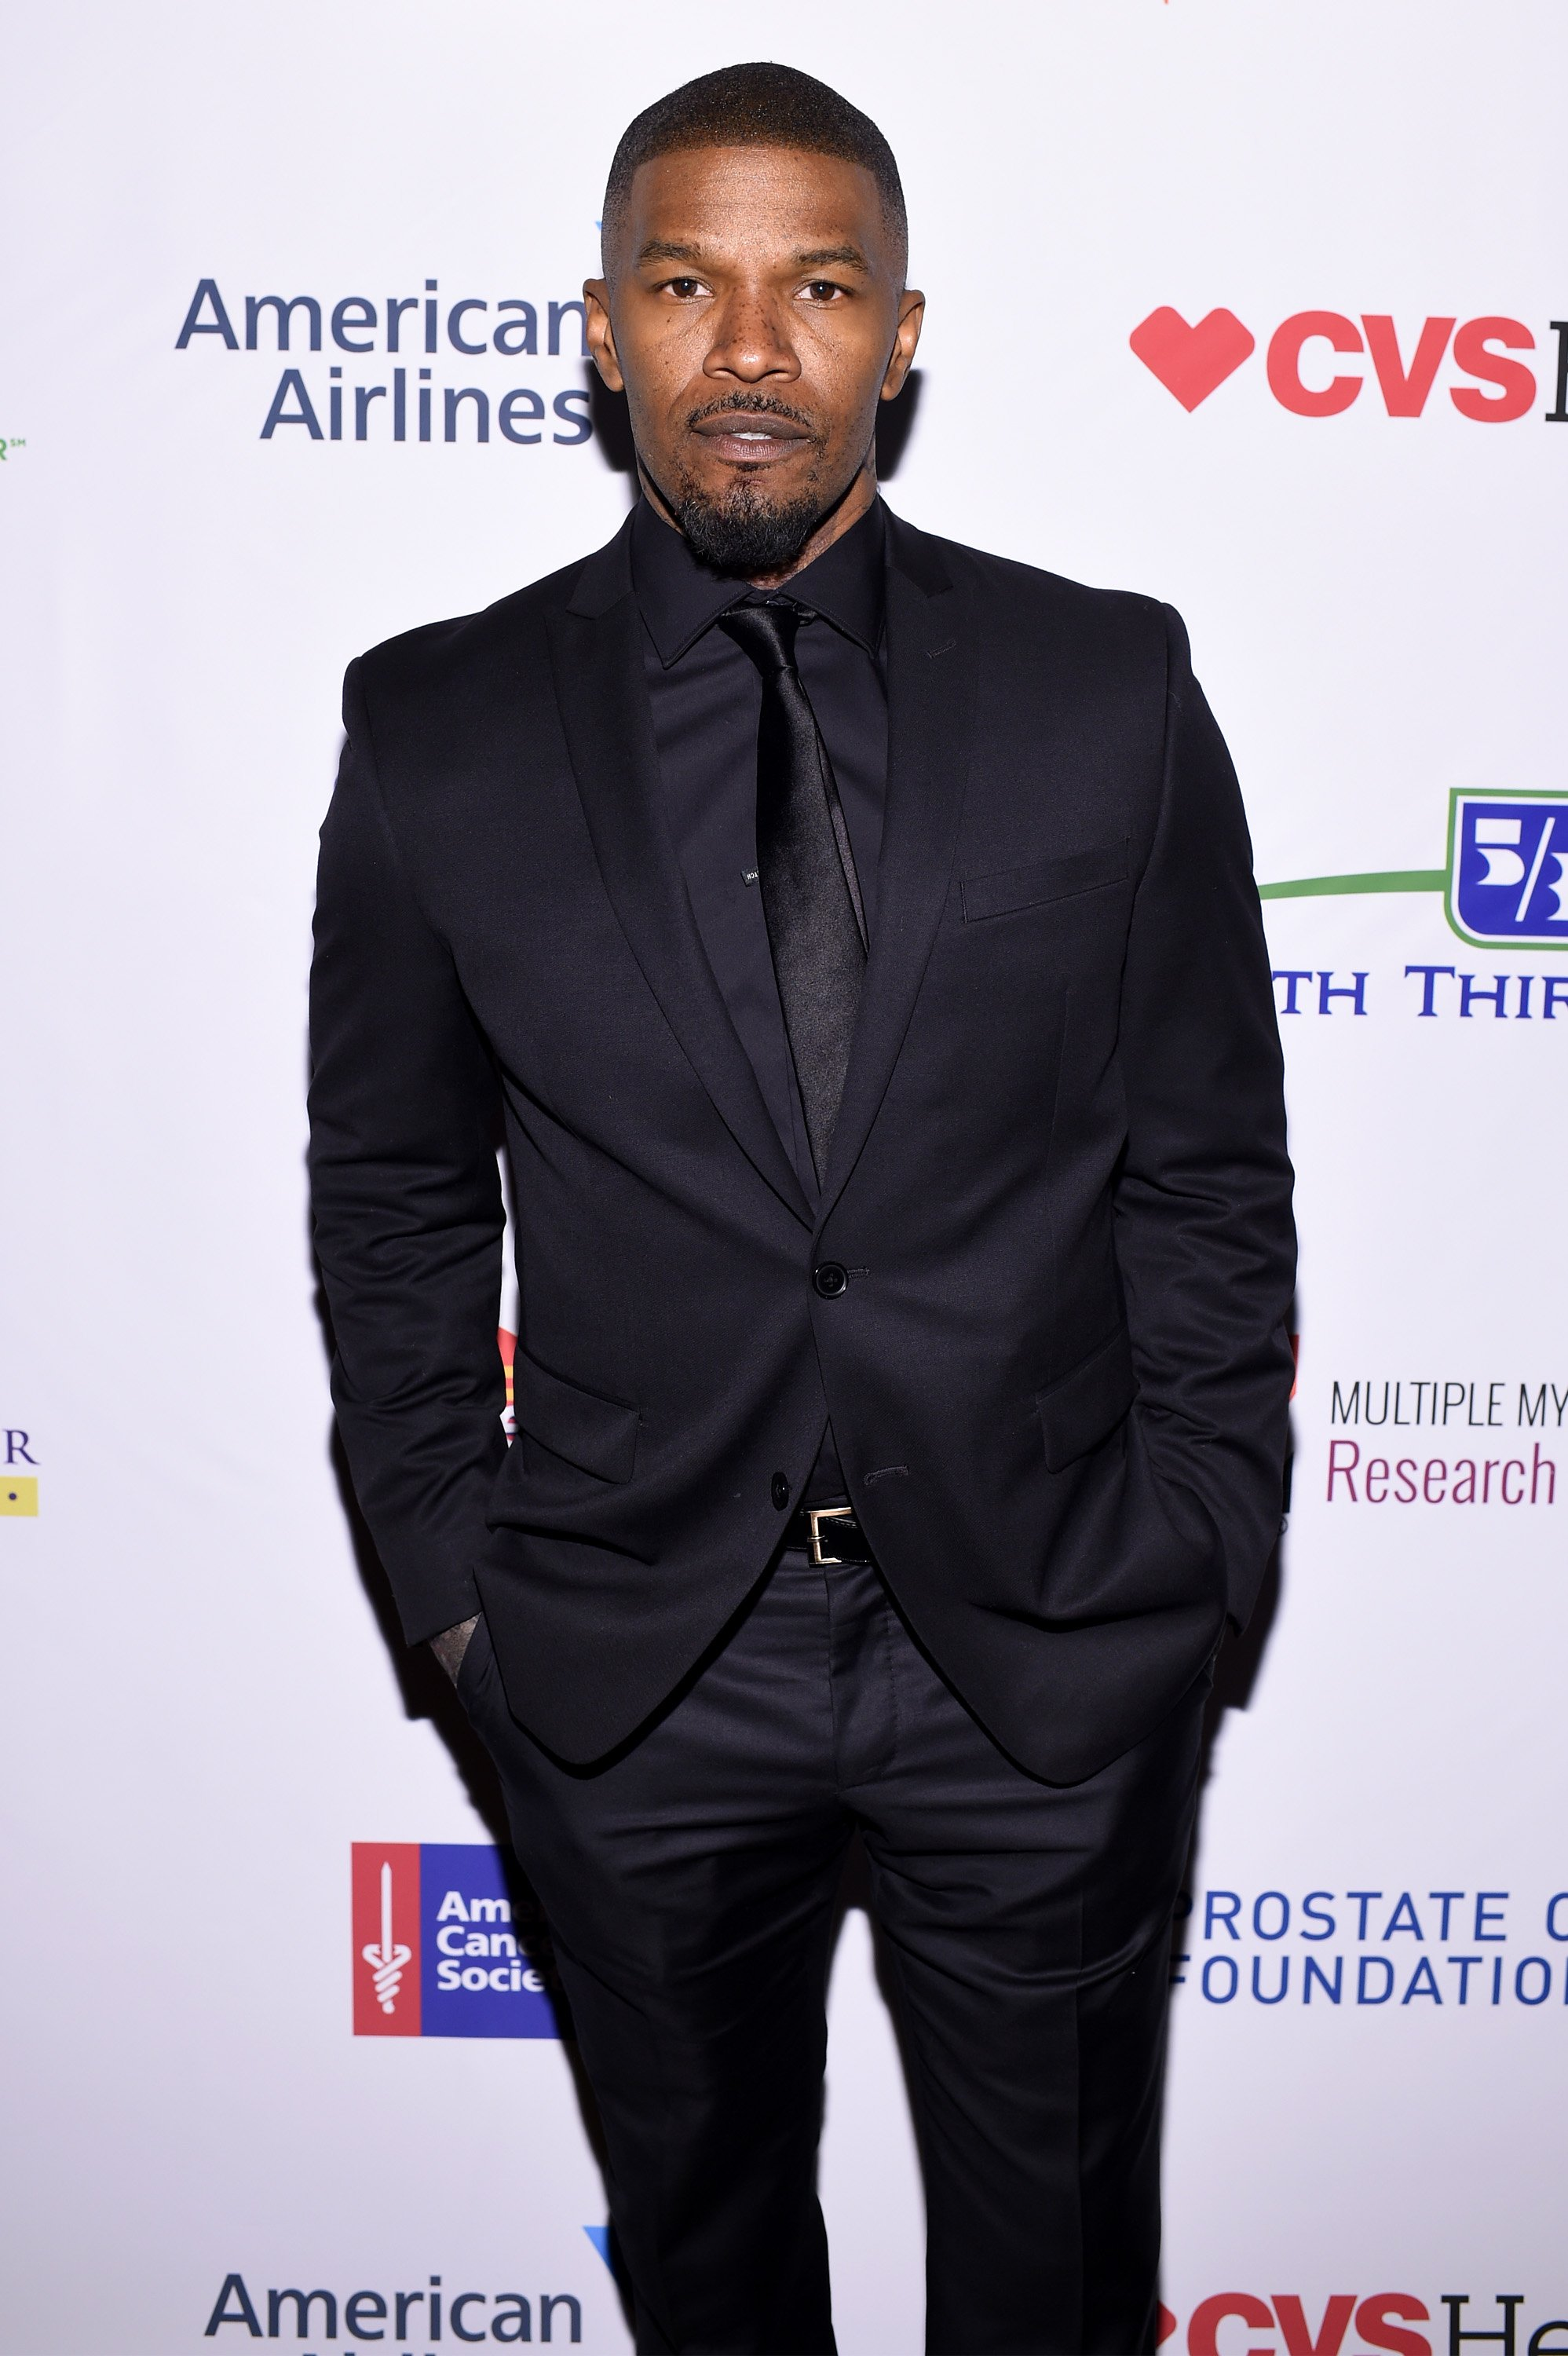 Jamie Foxx attends Stand Up To Cancer's New York Standing Room Only, presented by Entertainment Industry Foundation, with donors American Airlines and Merck, chaired by Jim Toth, Reese Witherspoon & MasterCard President/CEO Ajay Banga and his wife Ritu, h